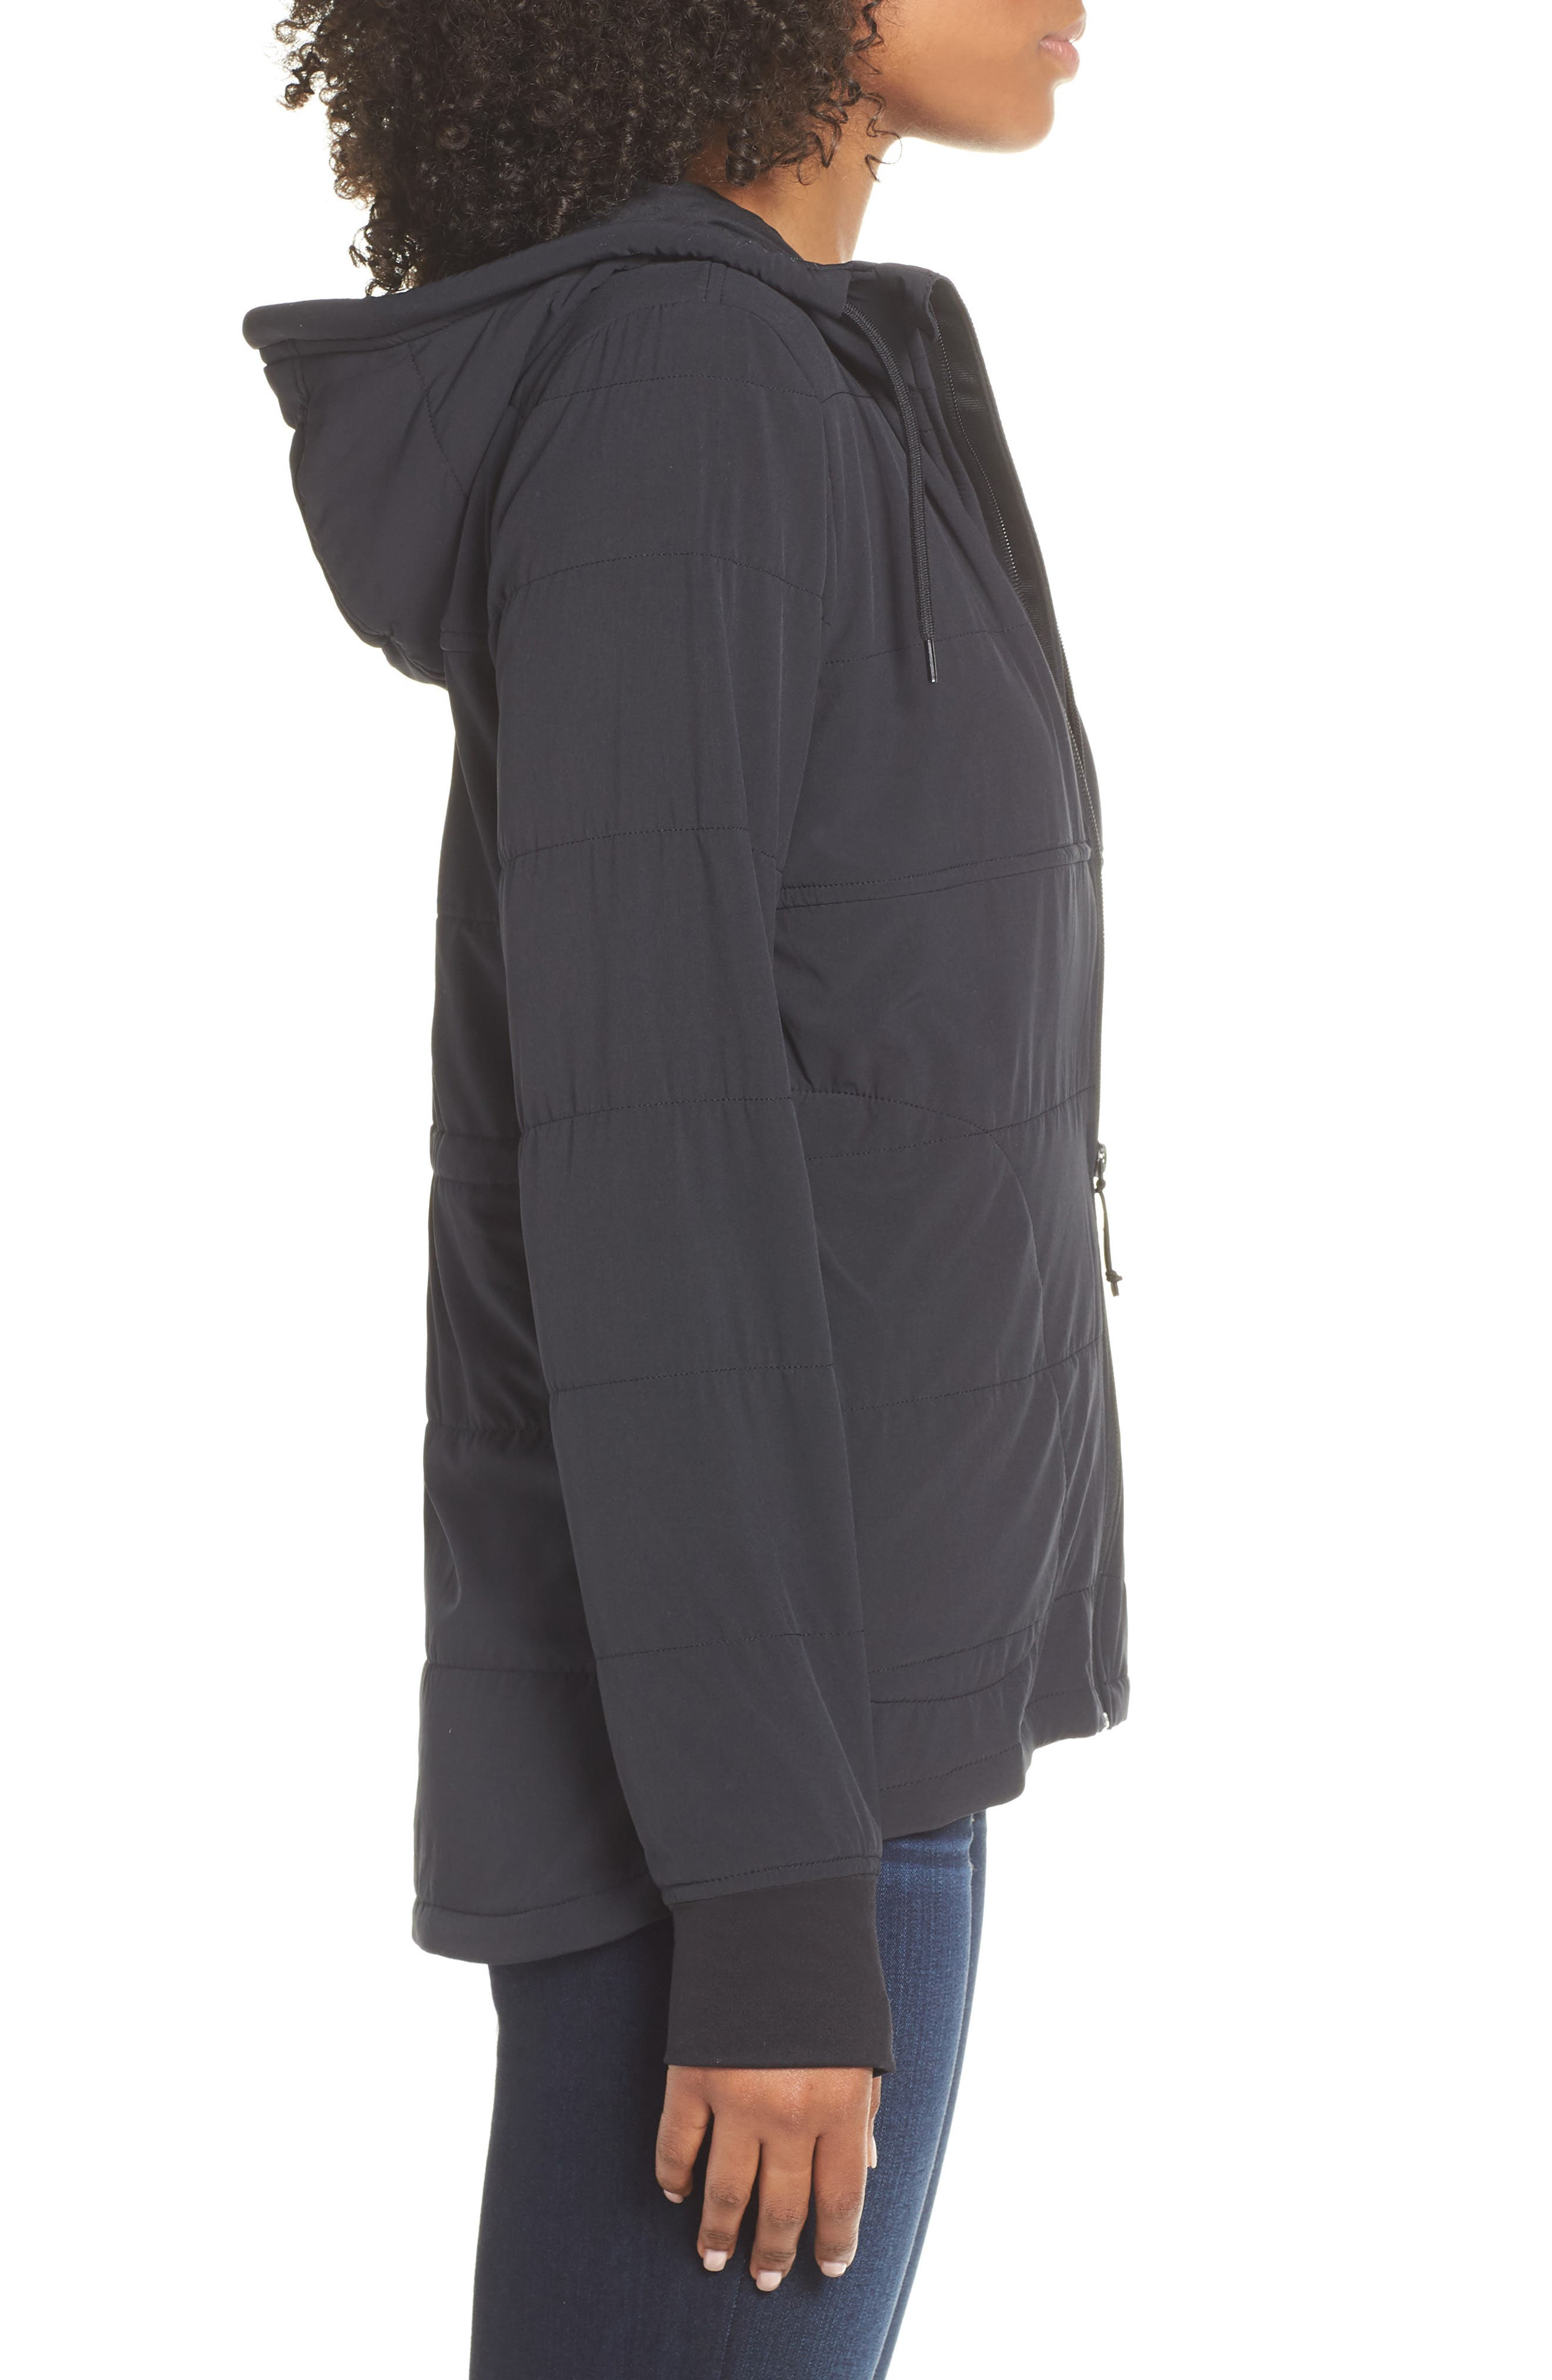 THE NORTH FACE,                             Mountain Insulated Zip Hooded Jacket,                             Alternate thumbnail 4, color,                             TNF BLACK